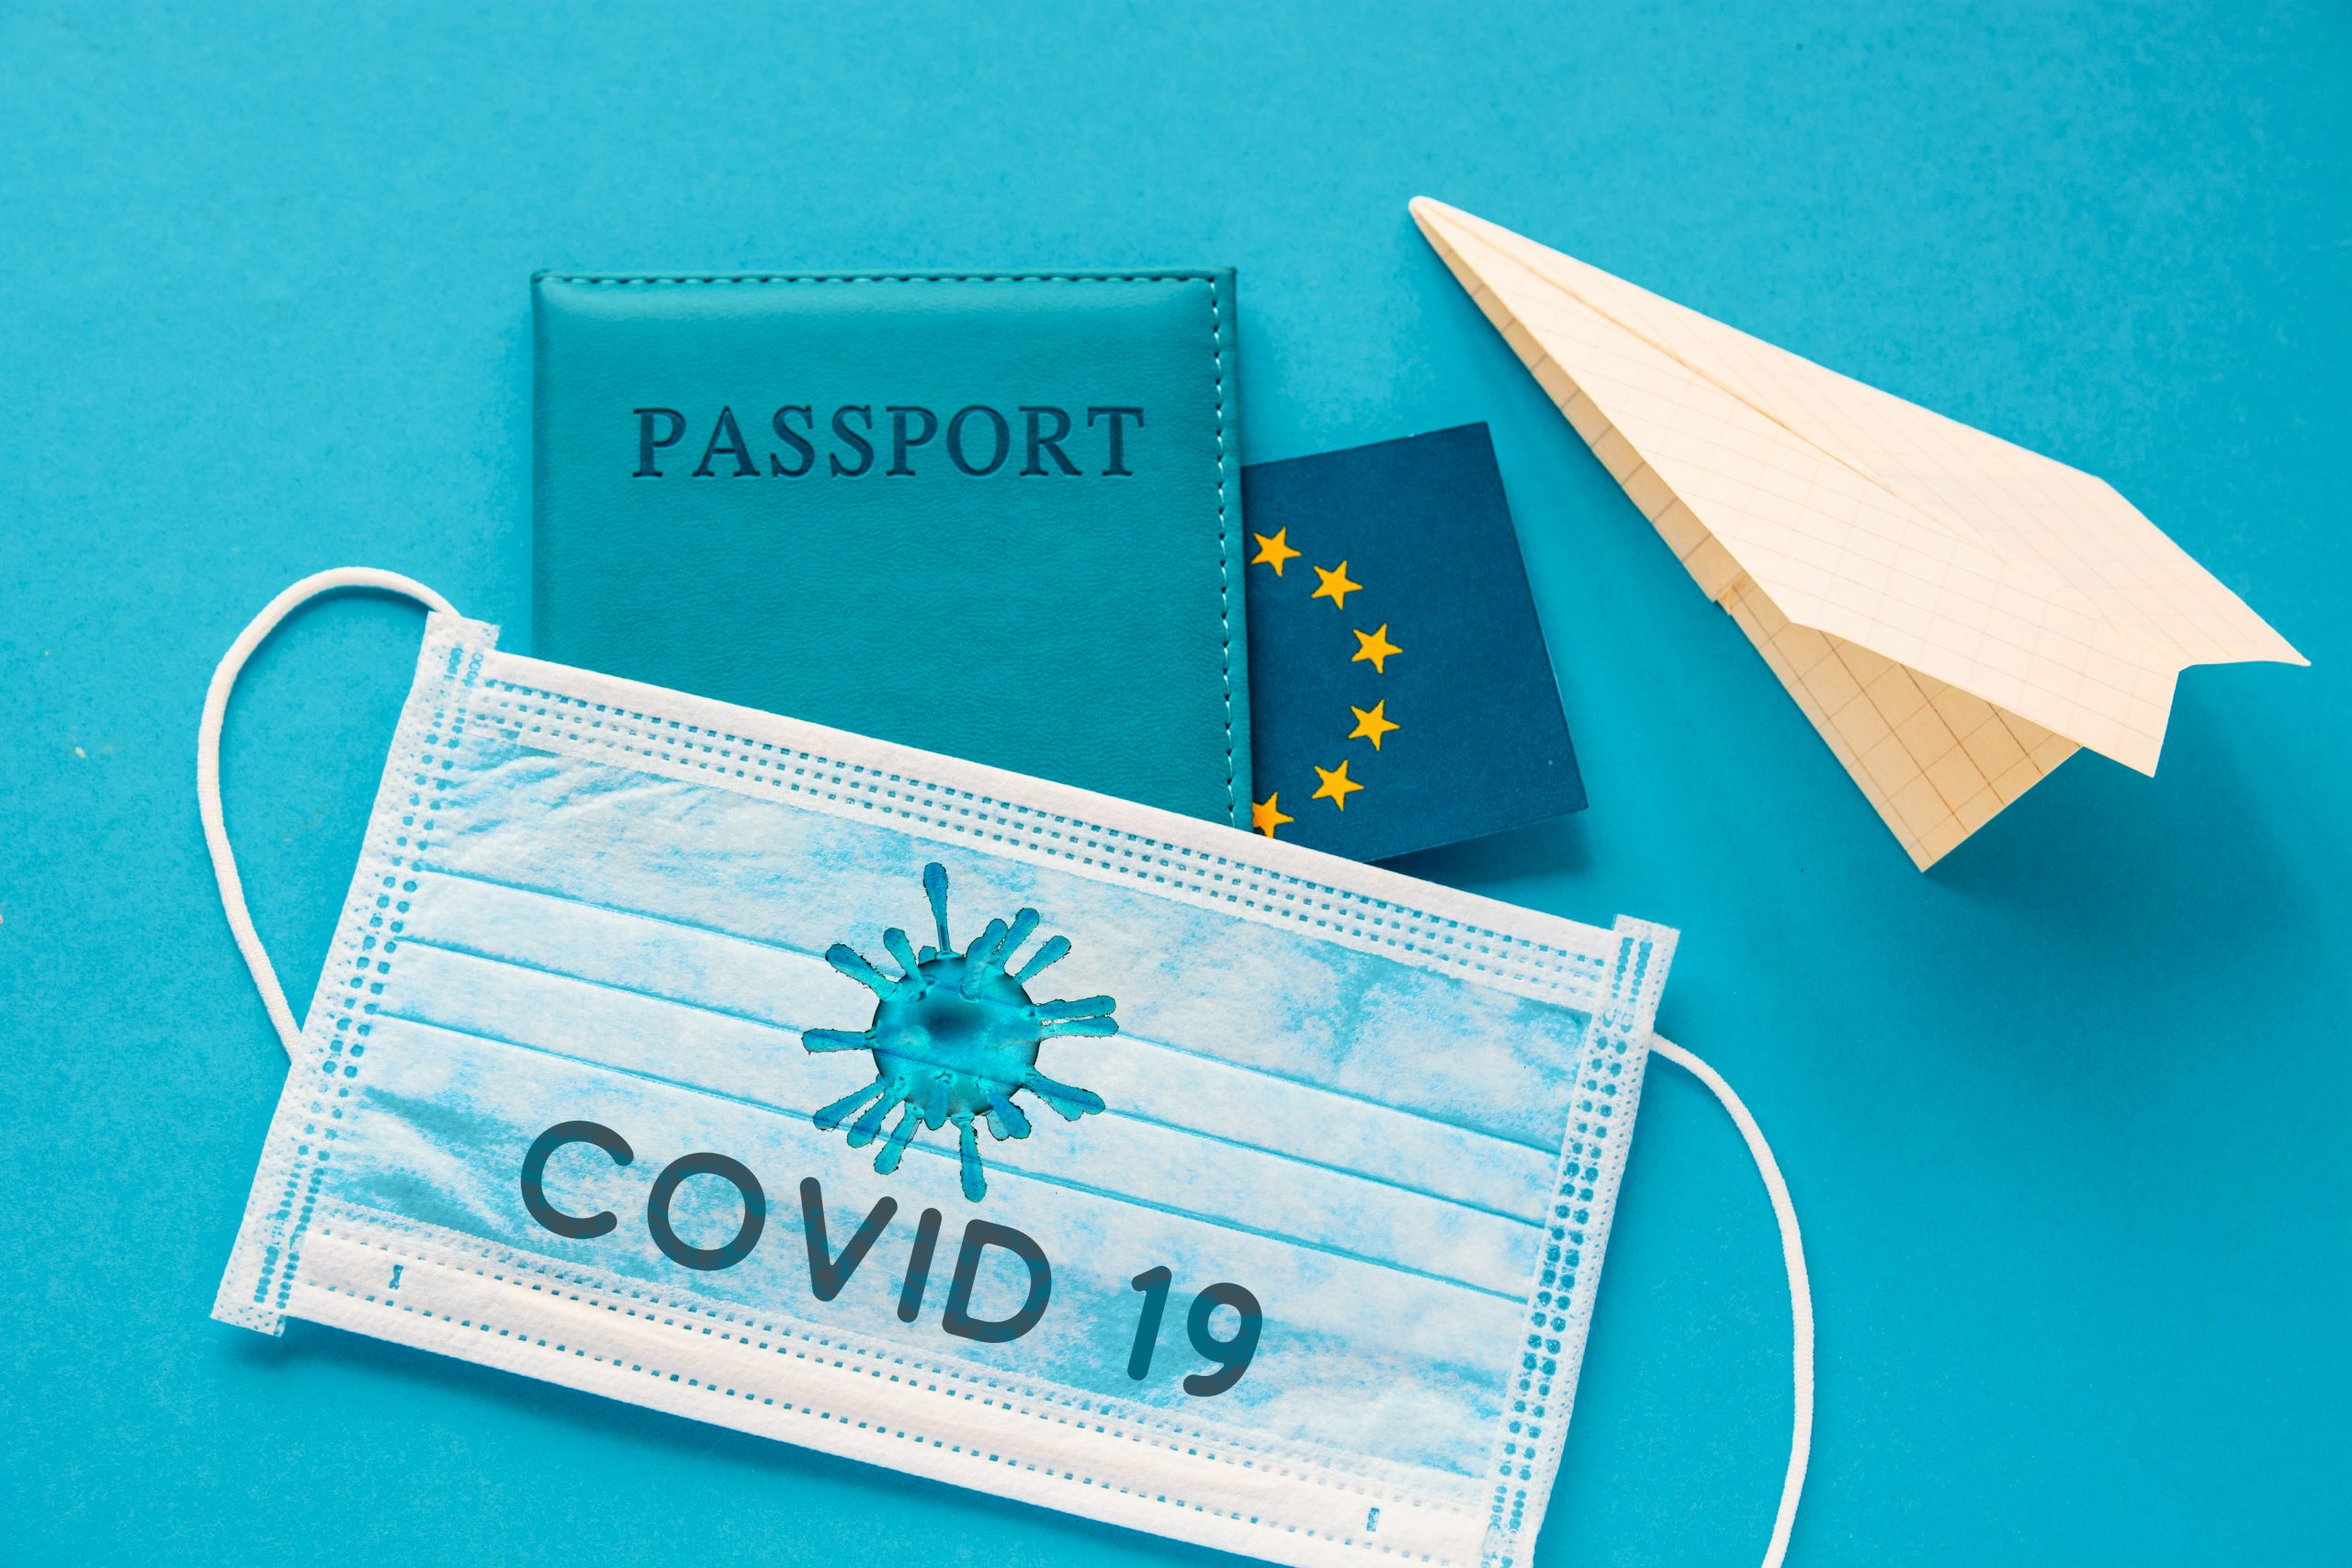 Schengen area and COVID-19 travel restrictions